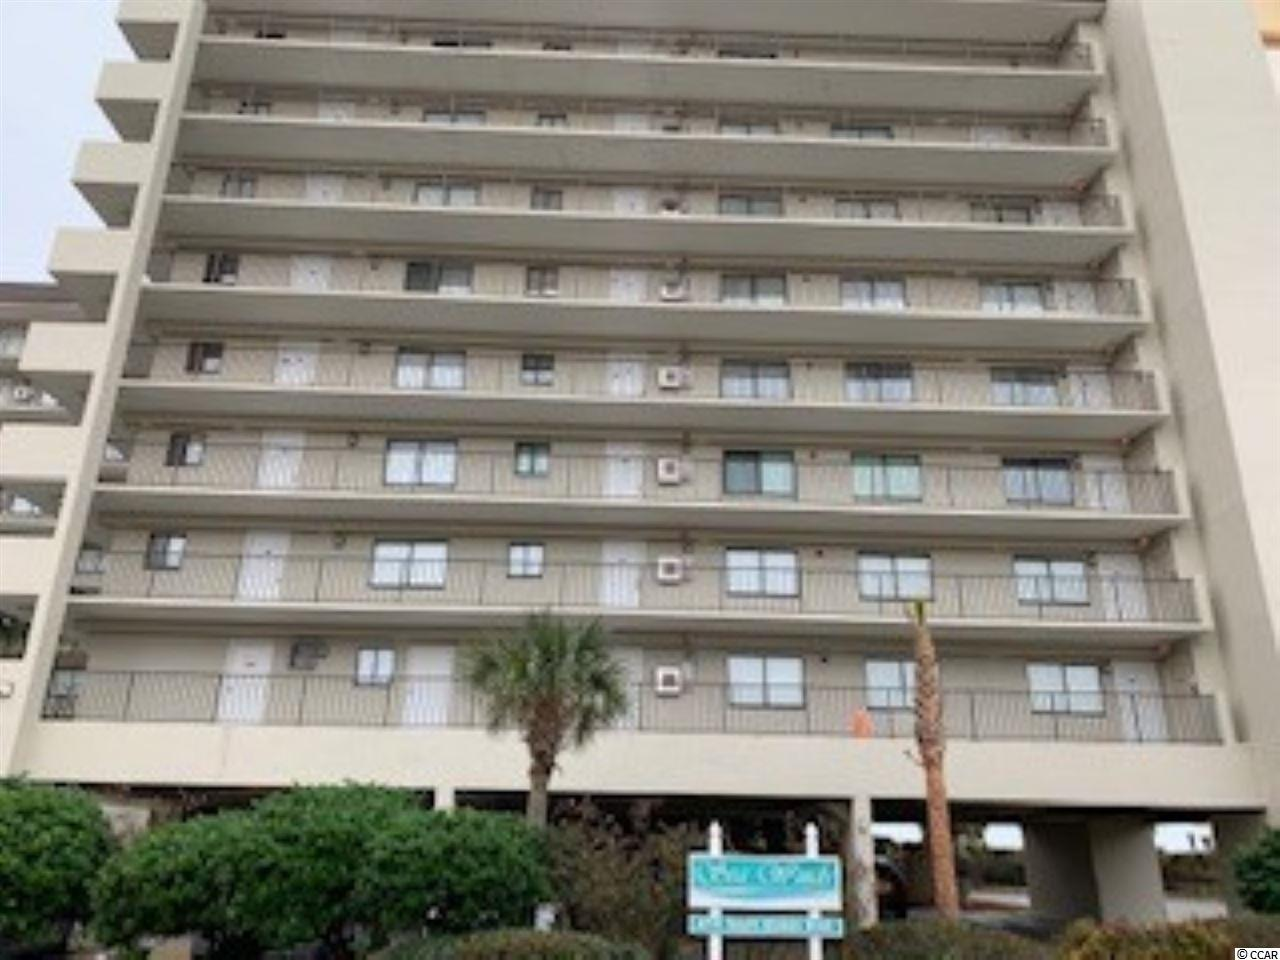 BEAUTIFUL 2 BED 2 BATH FURNISHED  CONDO ON 2ND FLOOR OF DESIRABLE SEA WINDS RESORT  IN THE WINDY HILL SECTION OF NORTH MYRTLE BEACH LOCATED A FEW MINUTES FROM BAREFOOT LANDING  THE UNIT COMES FULLY FURNISHED NEW HVAC INSTALLED 2016 NEW WASHING MACHINE 2016 NEW STOVE 2018 ,FULL KITCHEN AND WASHER DRYER IN UNIT, NEW CARPET INSTALLED 2018 THROUGHOUT LIVING ROOM AND BEDROOMS  ENJOY ENDLESS SUNRISES FROM YOUR LARGE OCEANFRONT BALCONY ACCESSED FROM LIVING ROOM AND YOUR OCEANFRONT MASTER BEDROOM  SEA WINDS HAS NO FRONT DESK SO YOU WONT FEEL LIKE YOUR ARE IN A BIG RESORT OR HOTEL JUST PERFECT FOR SECOND HOME , INVESTMENT PROPERTY OR PRIMARY RESIDENCE SEA WINDS HAS AN INDOOR HEATED POOL WHICH IS A BIG ATTRACTION FOR WINTER RENTALS  DO NOT HESITATE, MAKE AN APPOINTMENT TODAY TO SEE THIS BEAUTIFUL UNIT